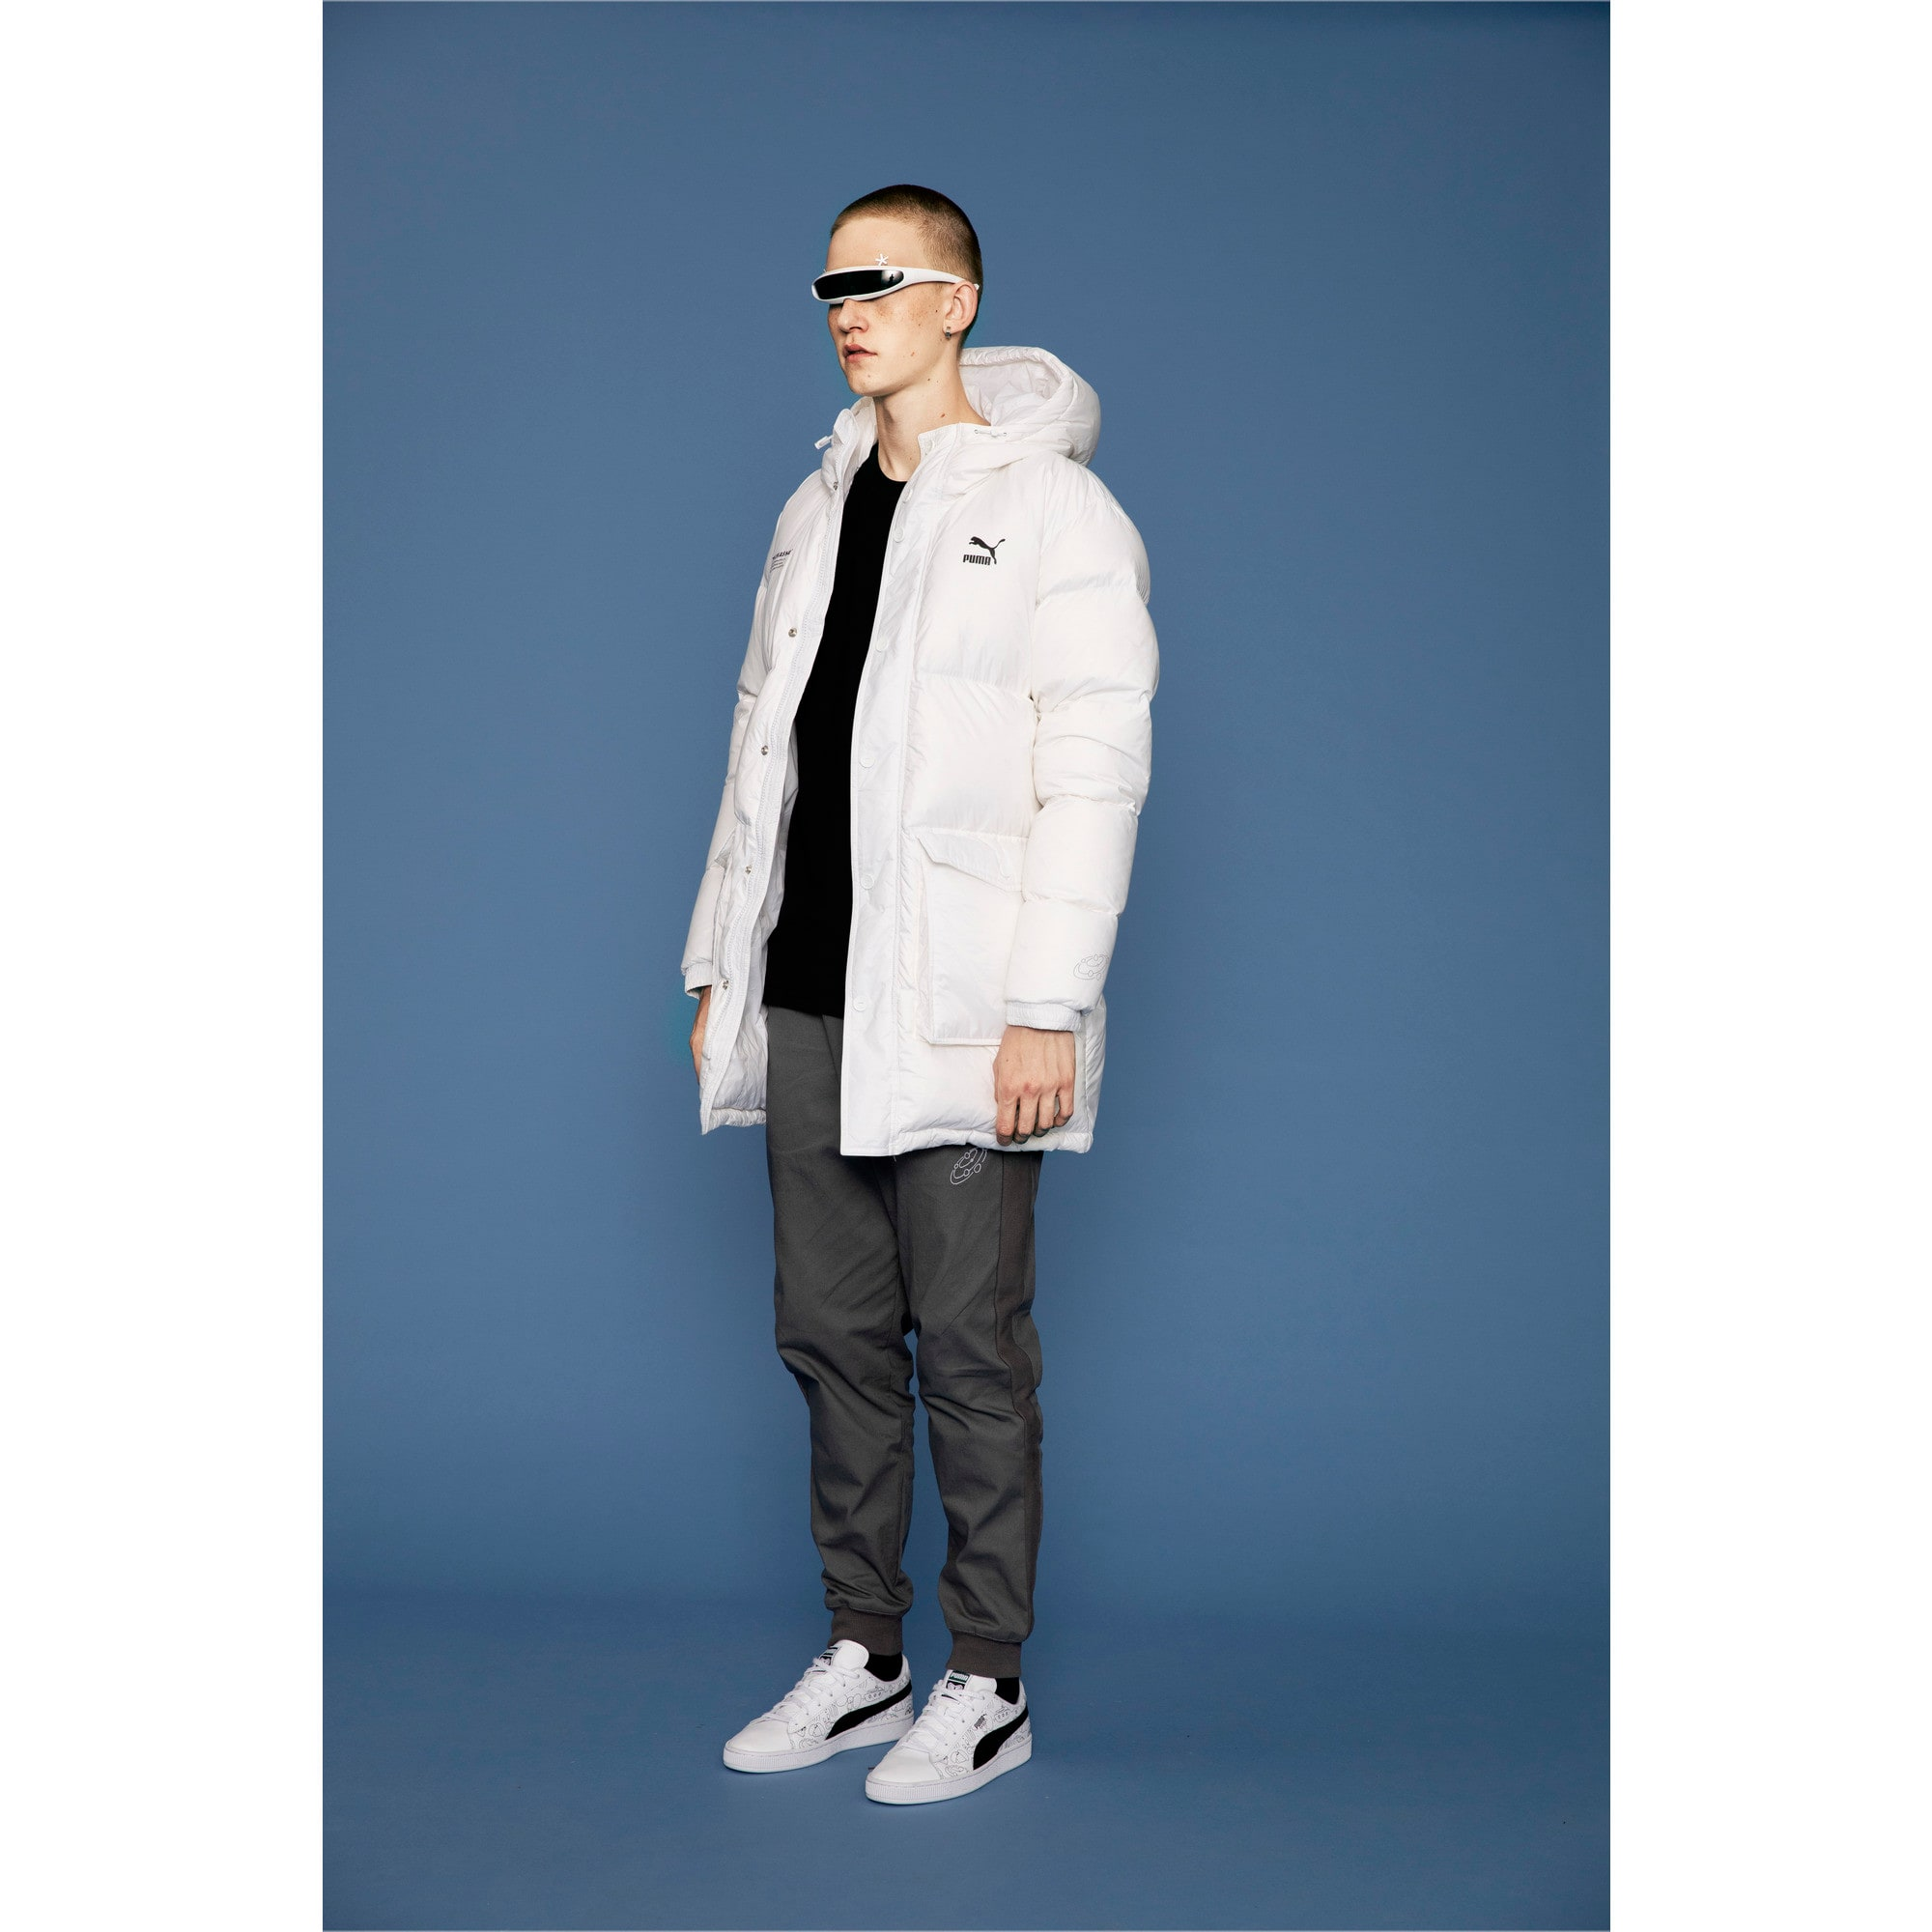 Thumbnail 6 of PUMA x TYAKASHA Woven Down Parka, Puma White, medium